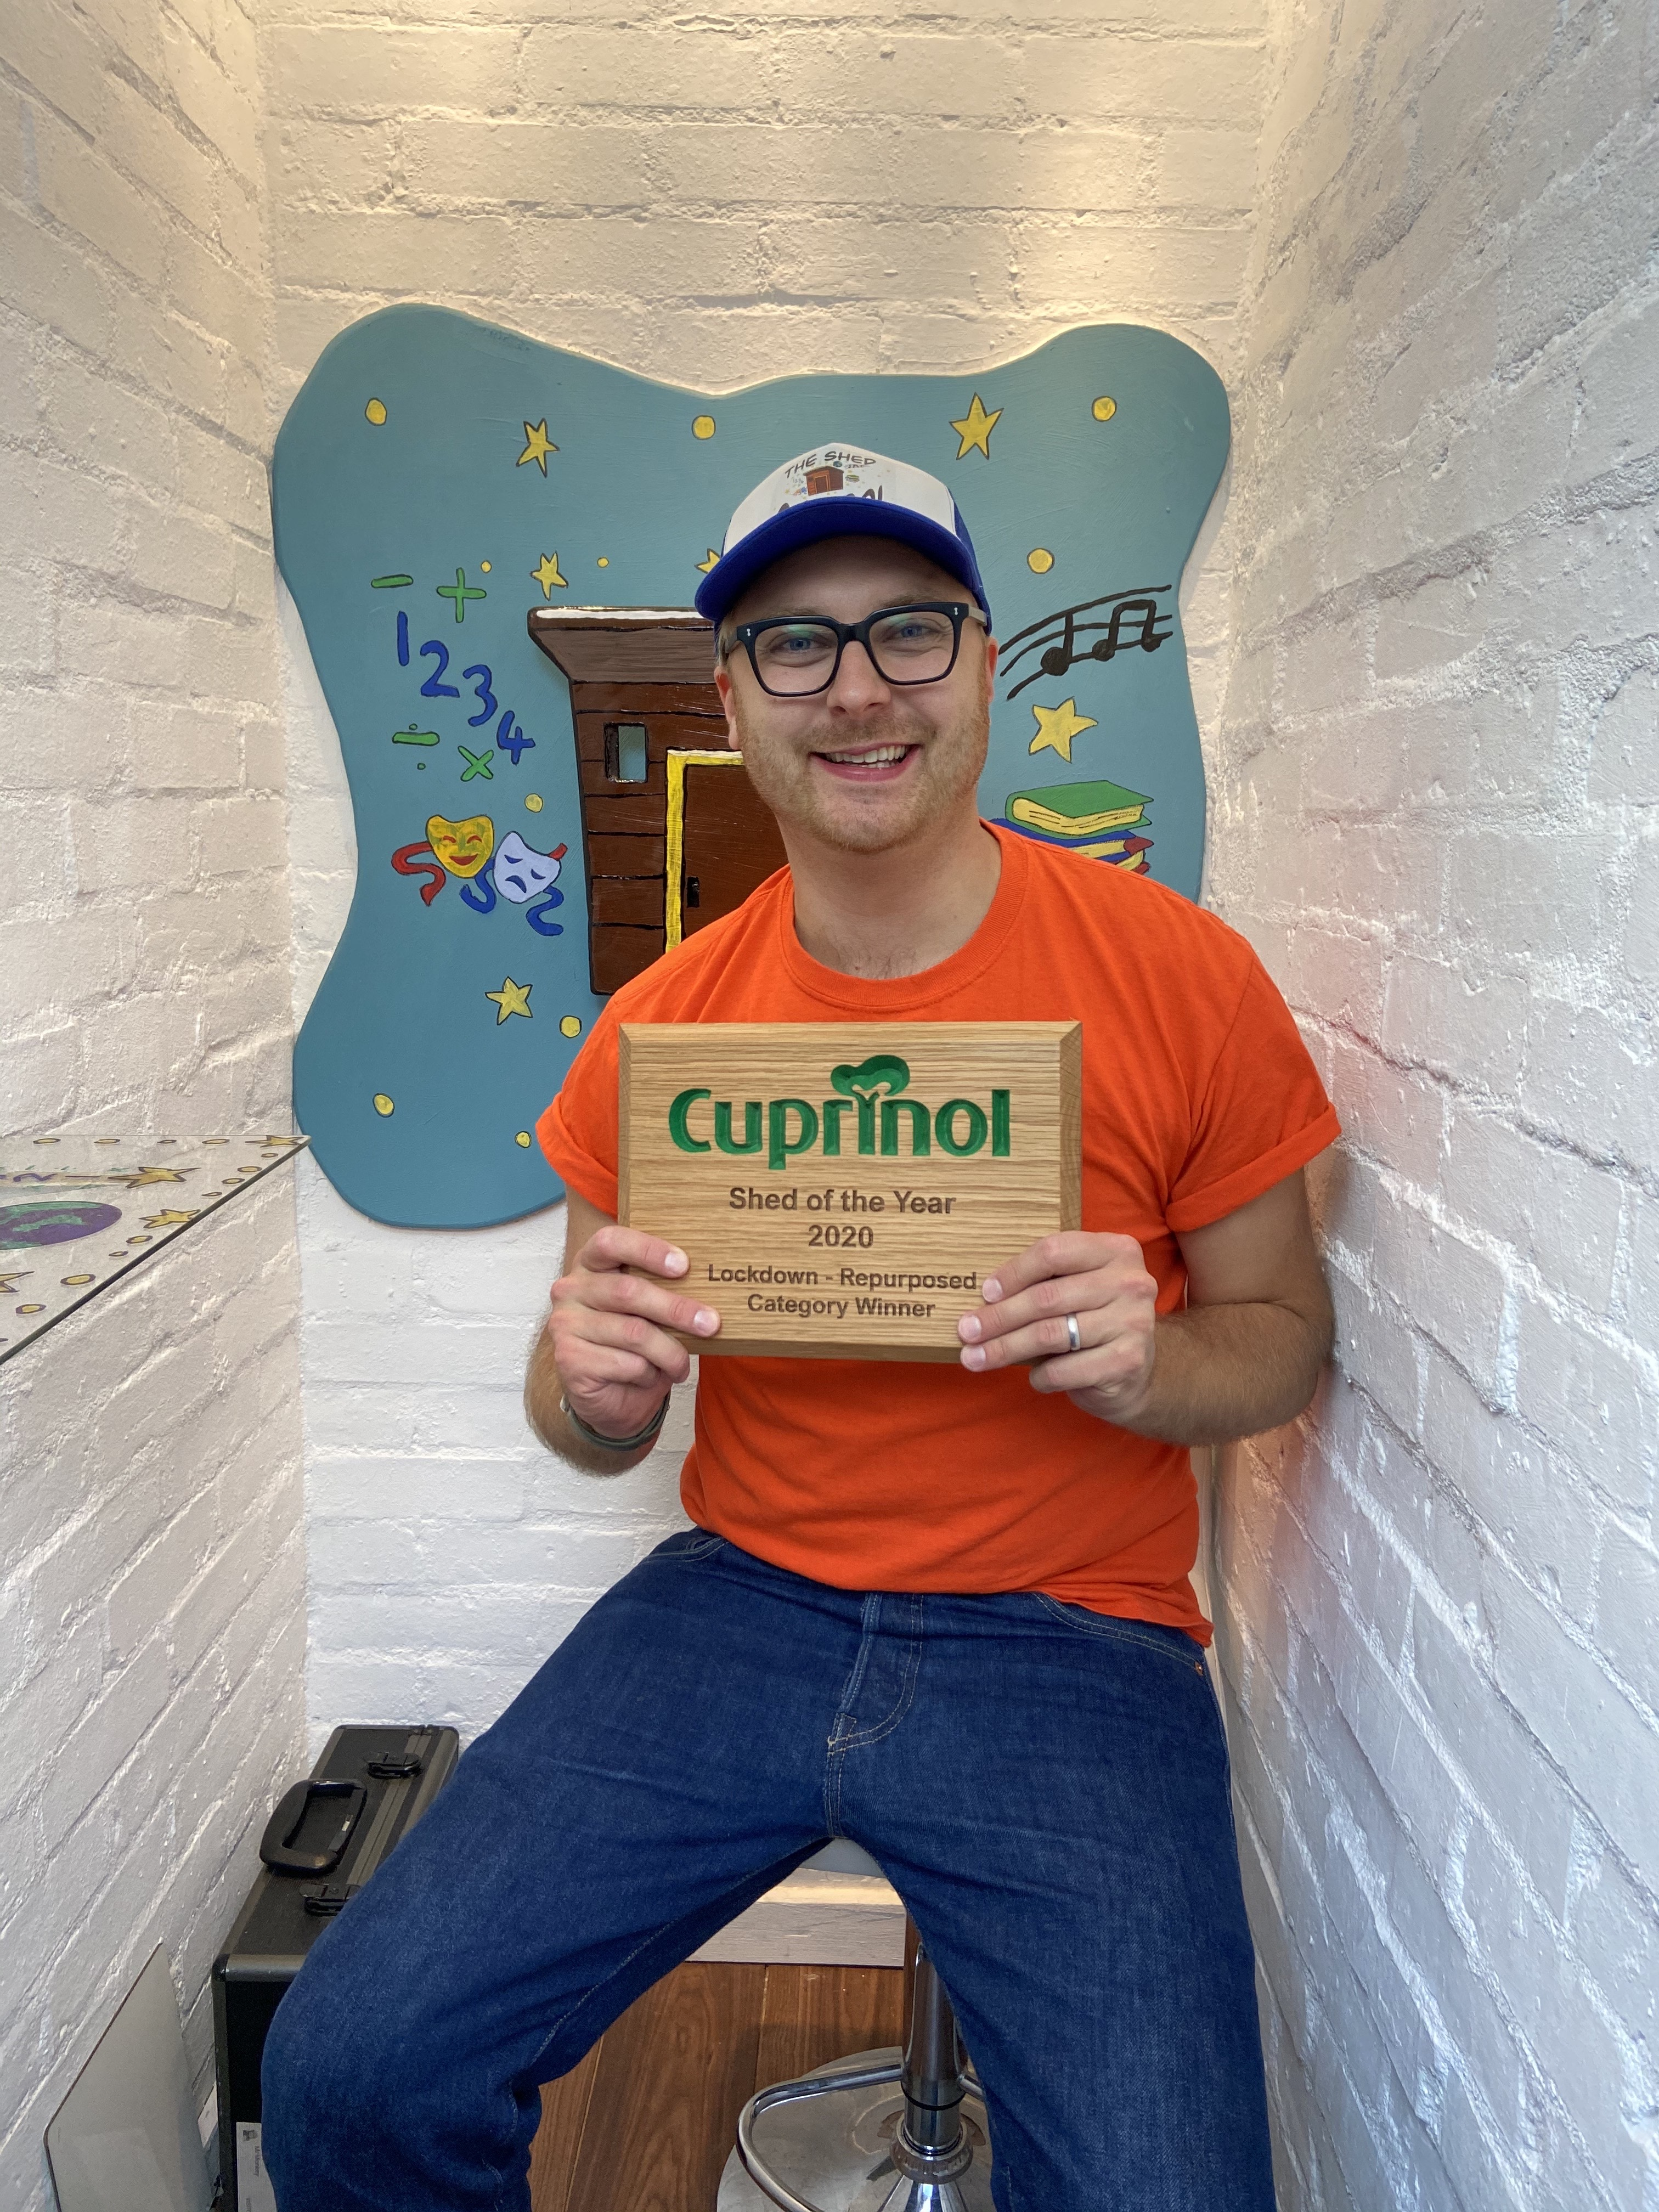 Winner of the Special Commendation in the Cuprinol Shed of the Year 2020 competition